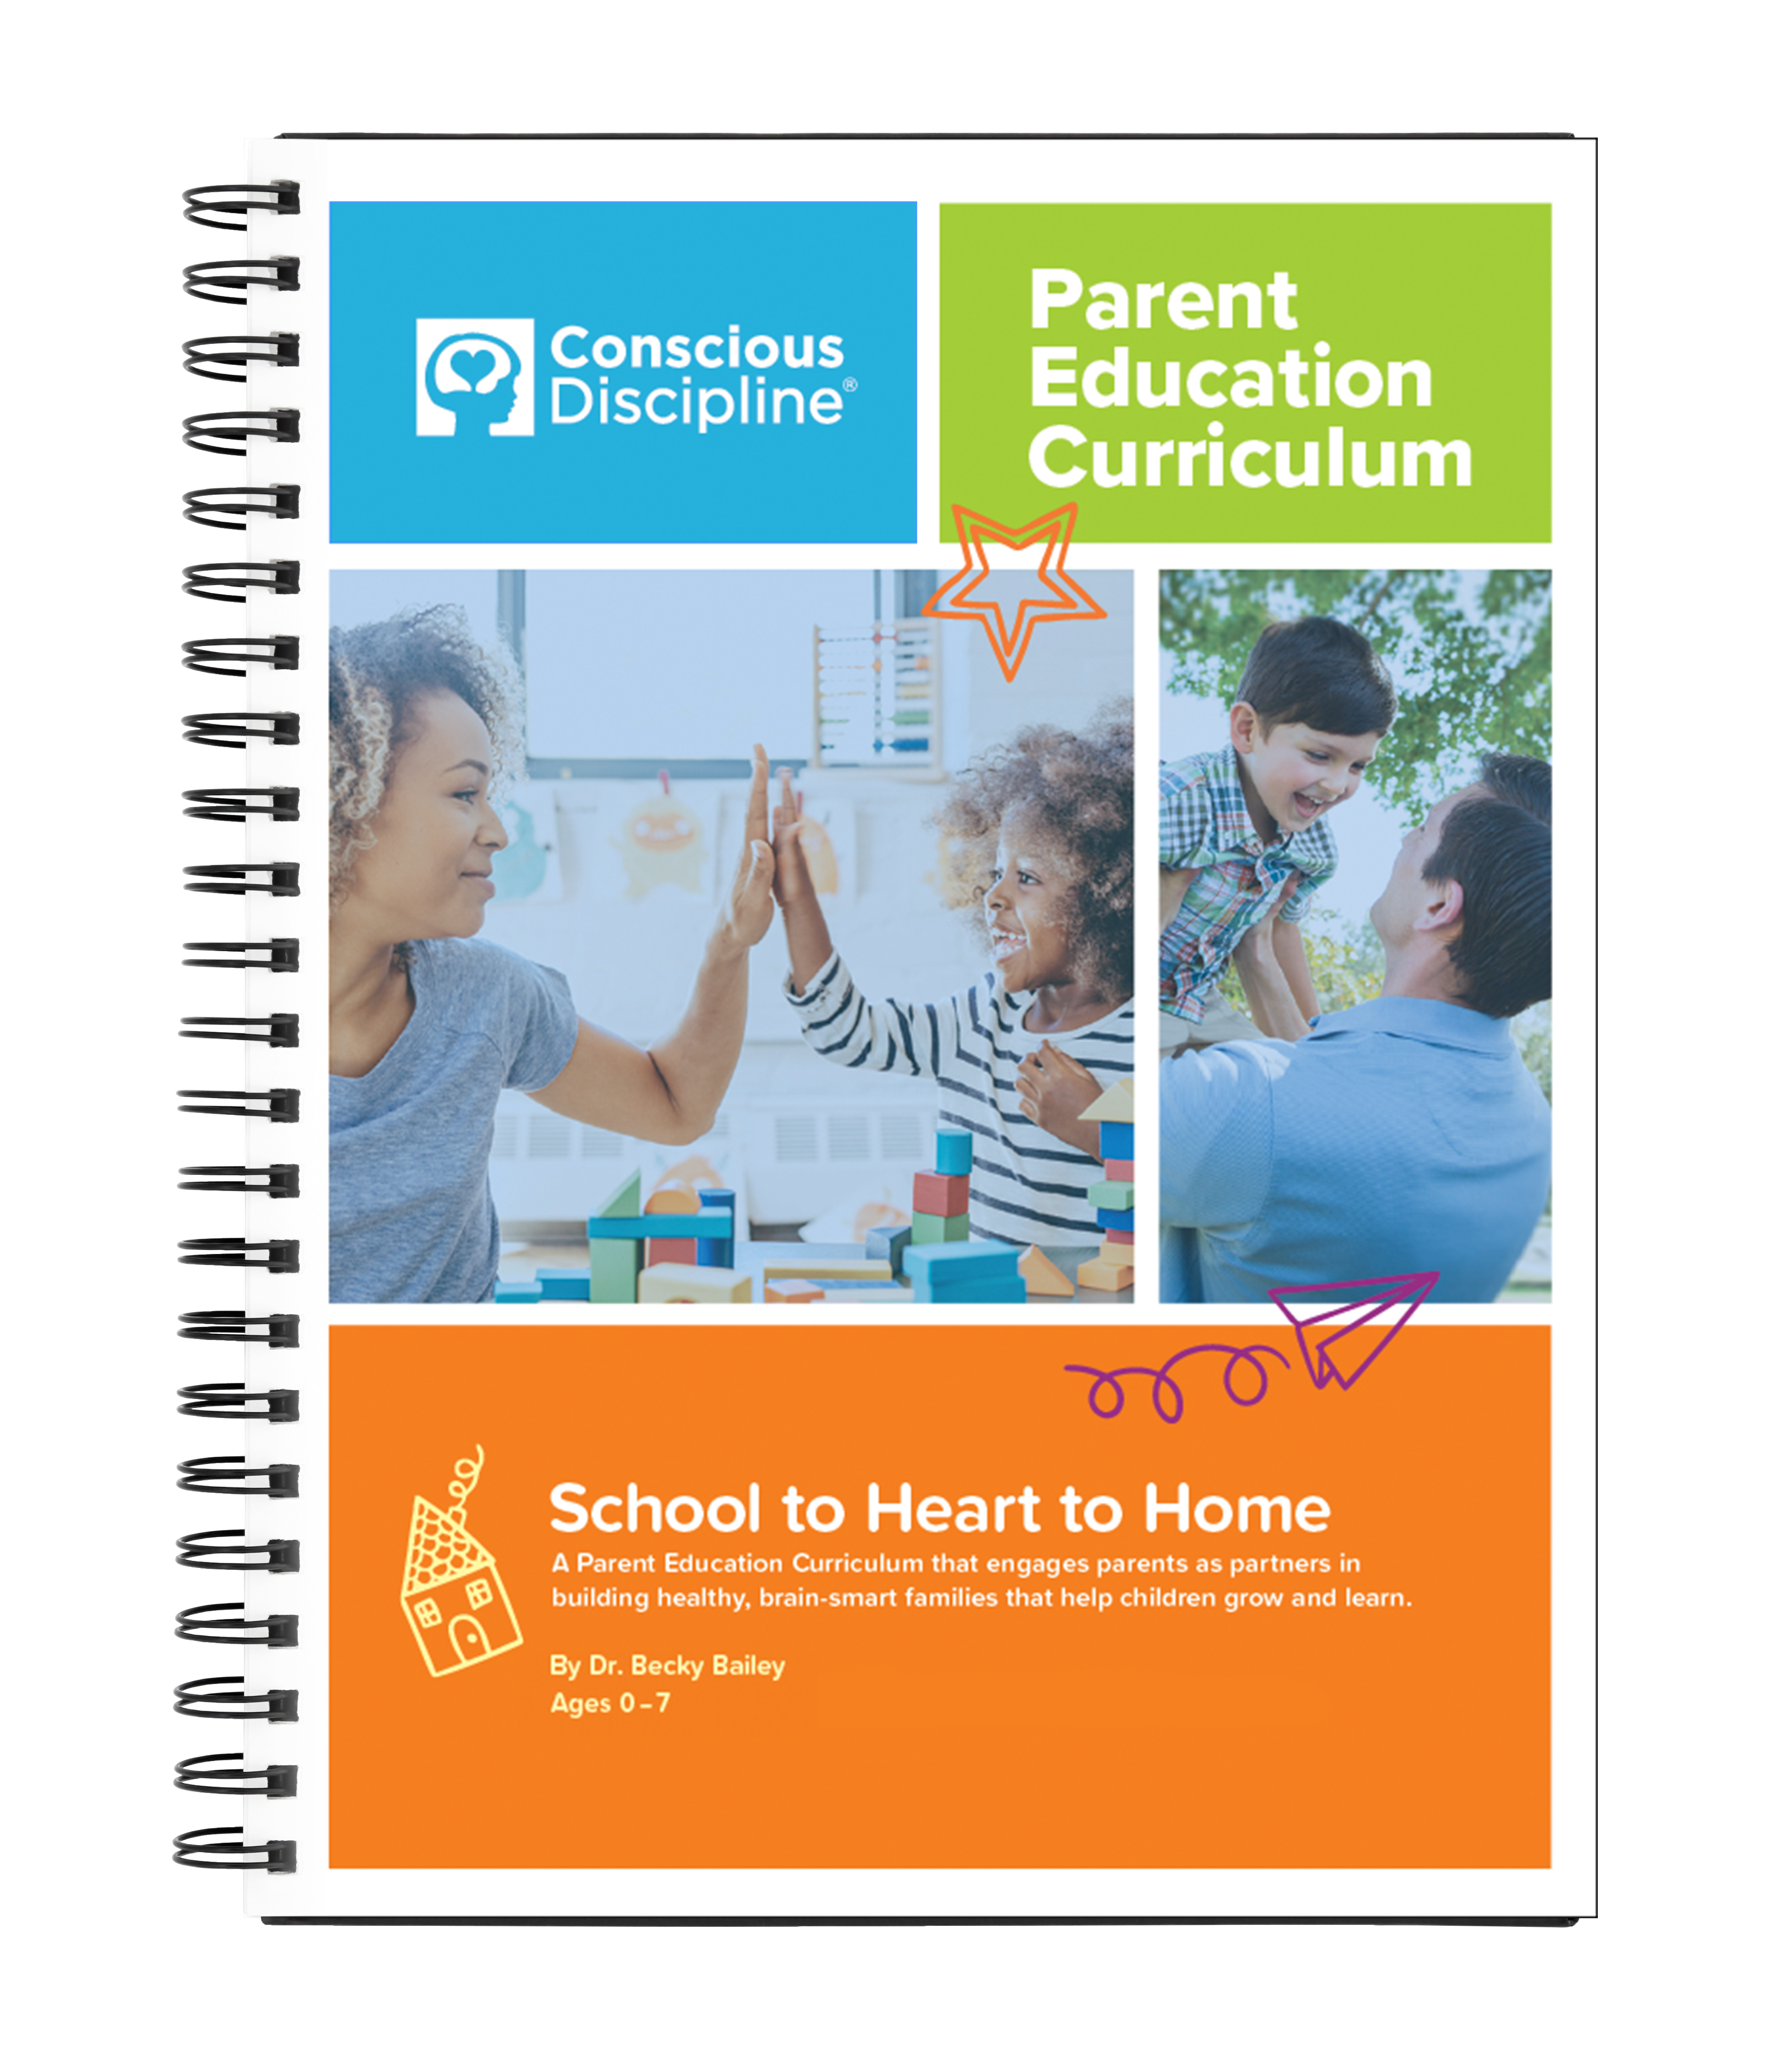 Conscious discipline . Curriculum clipart parent education